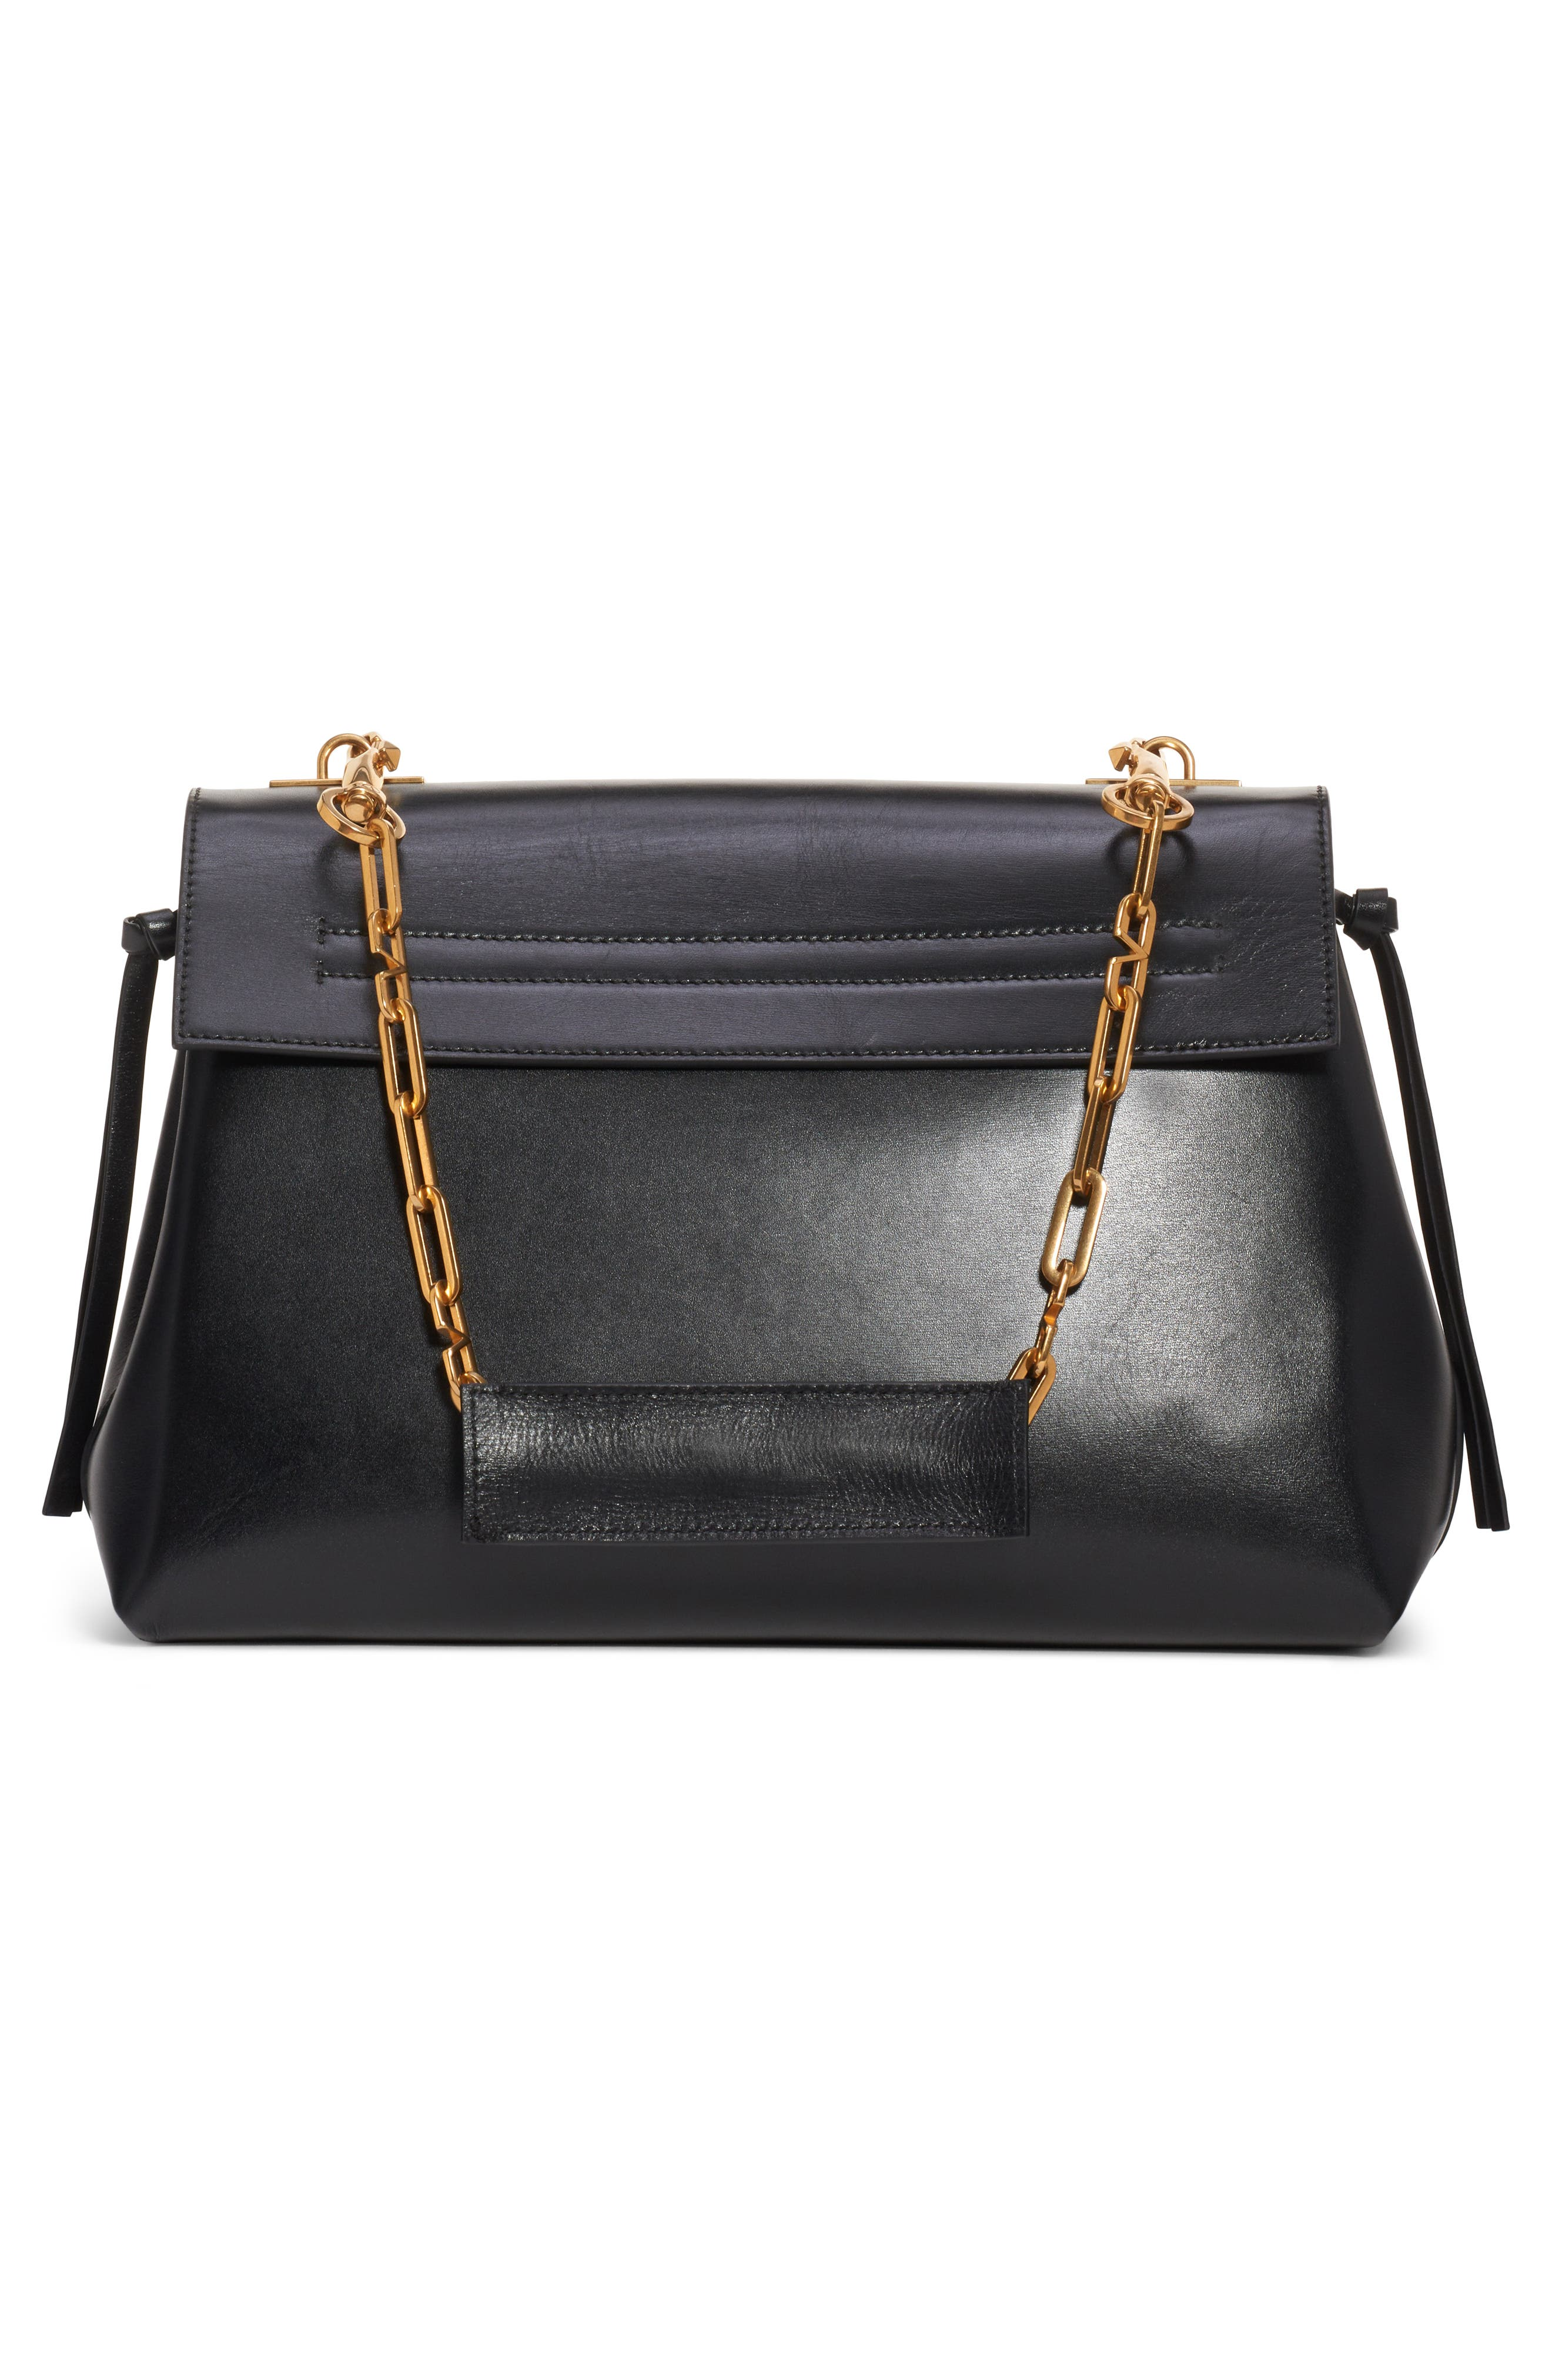 Medium Vee Ring Leather Shoulder Bag,                             Alternate thumbnail 2, color,                             NERO